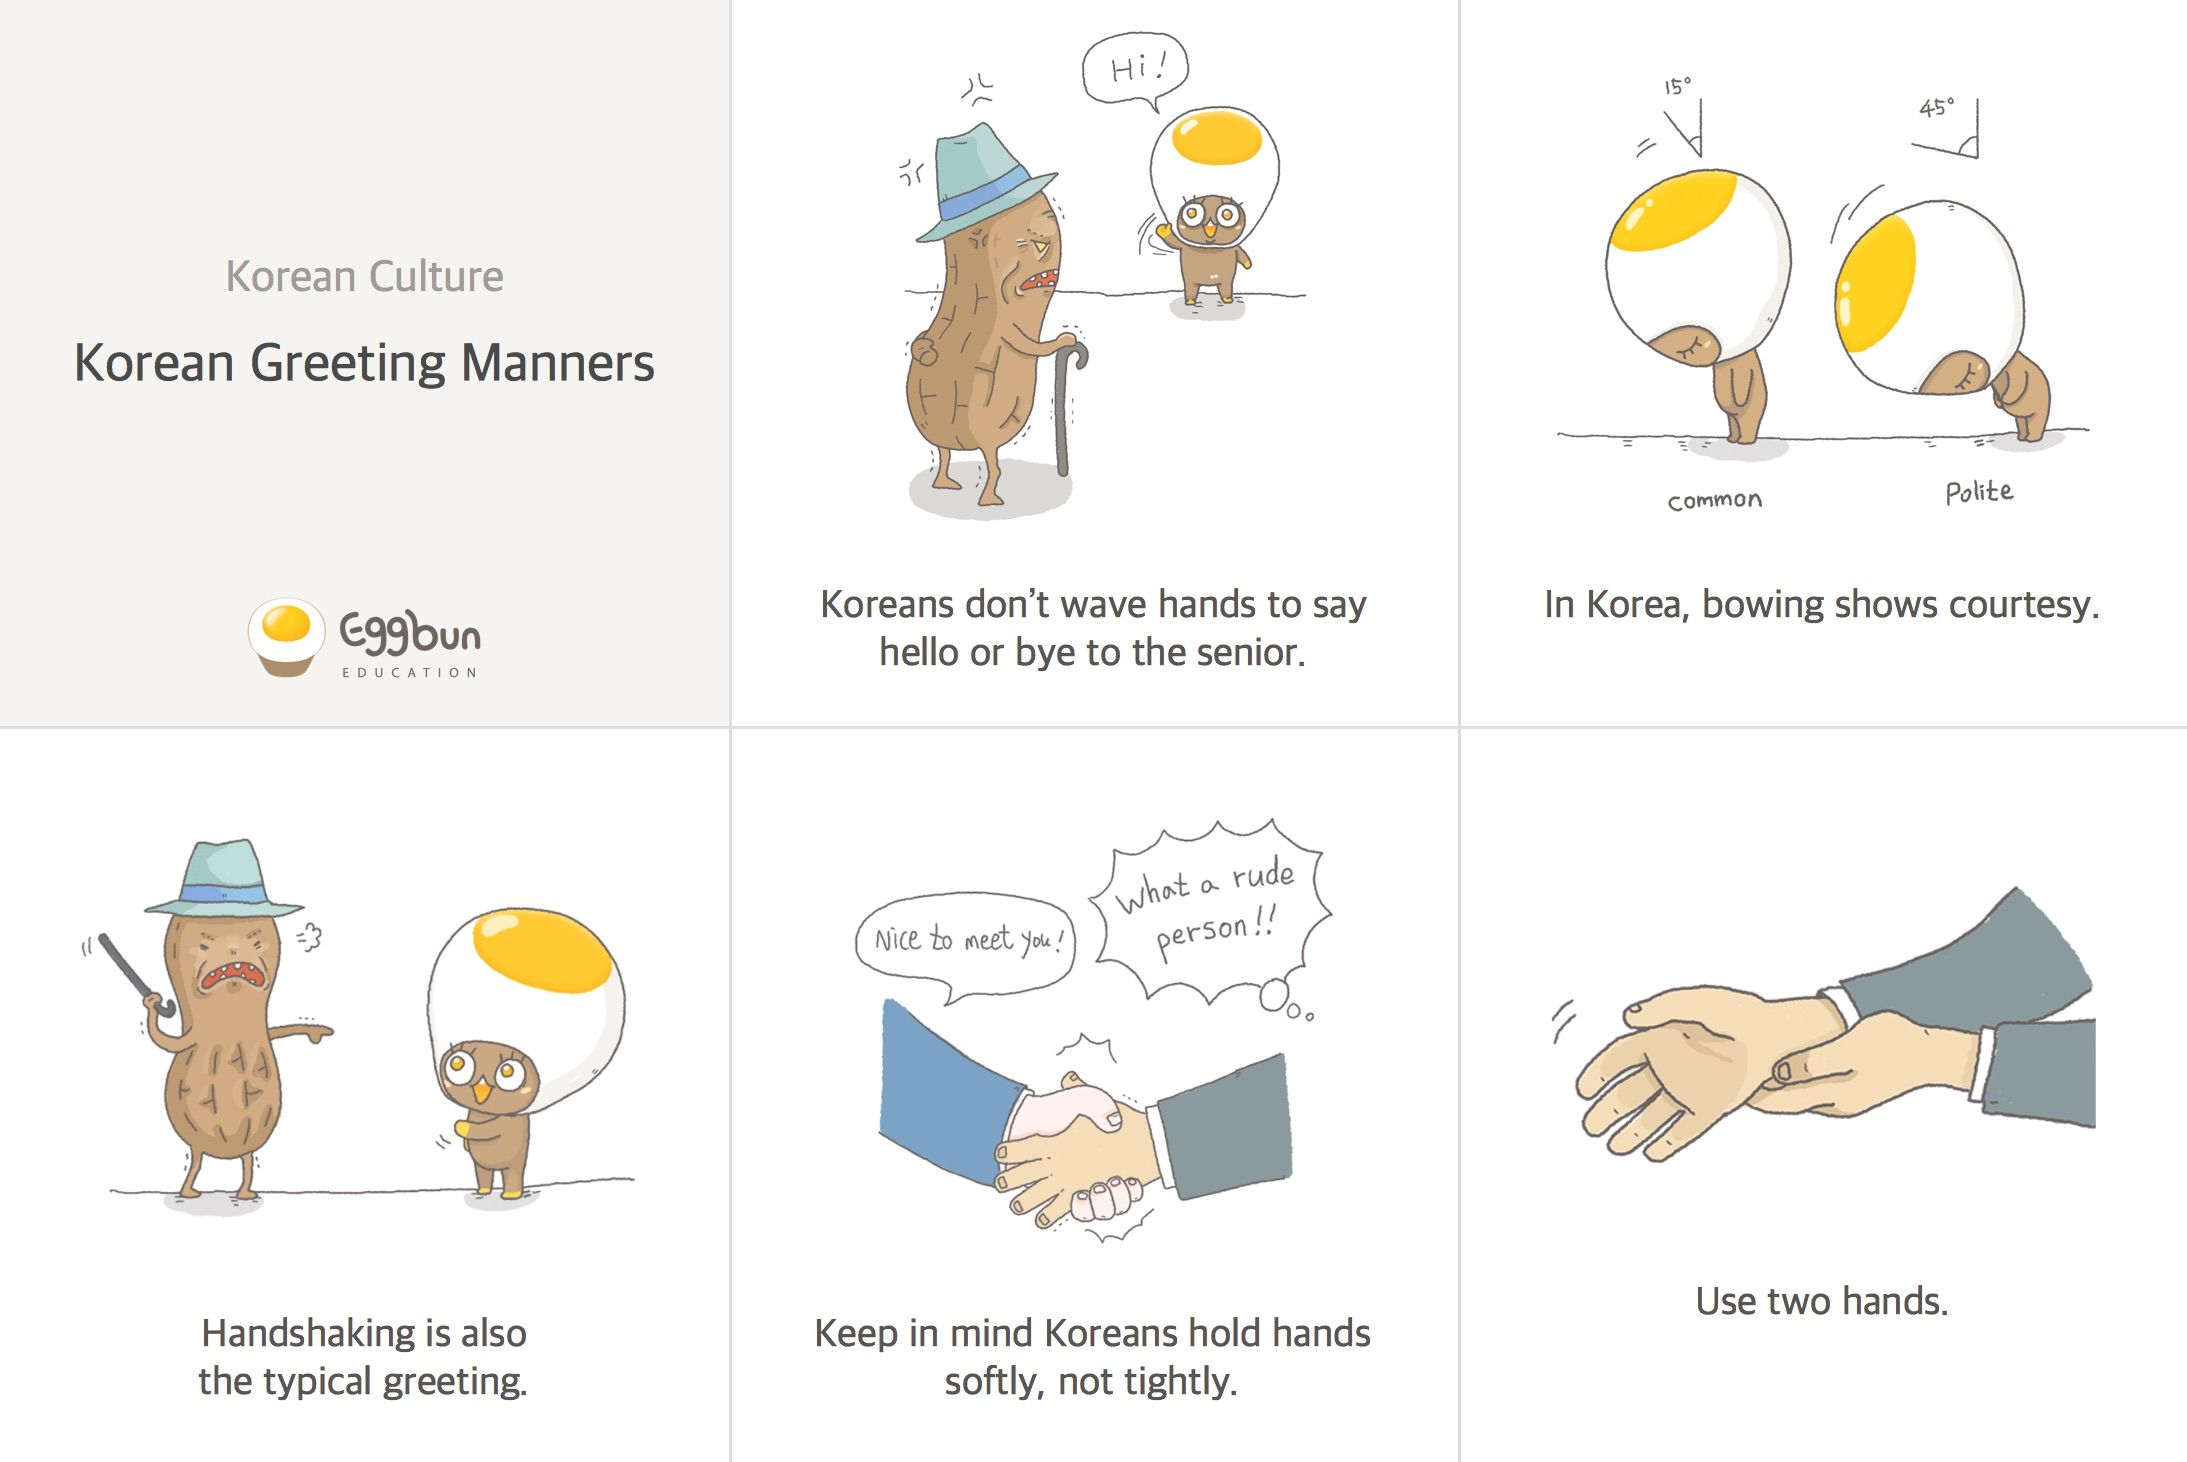 5 korean greeting manners you should know before visiting learning 5 korean greeting manners you should know before visiting a lot of this is based on a korean social hierarchy based on age although visitors are not m4hsunfo